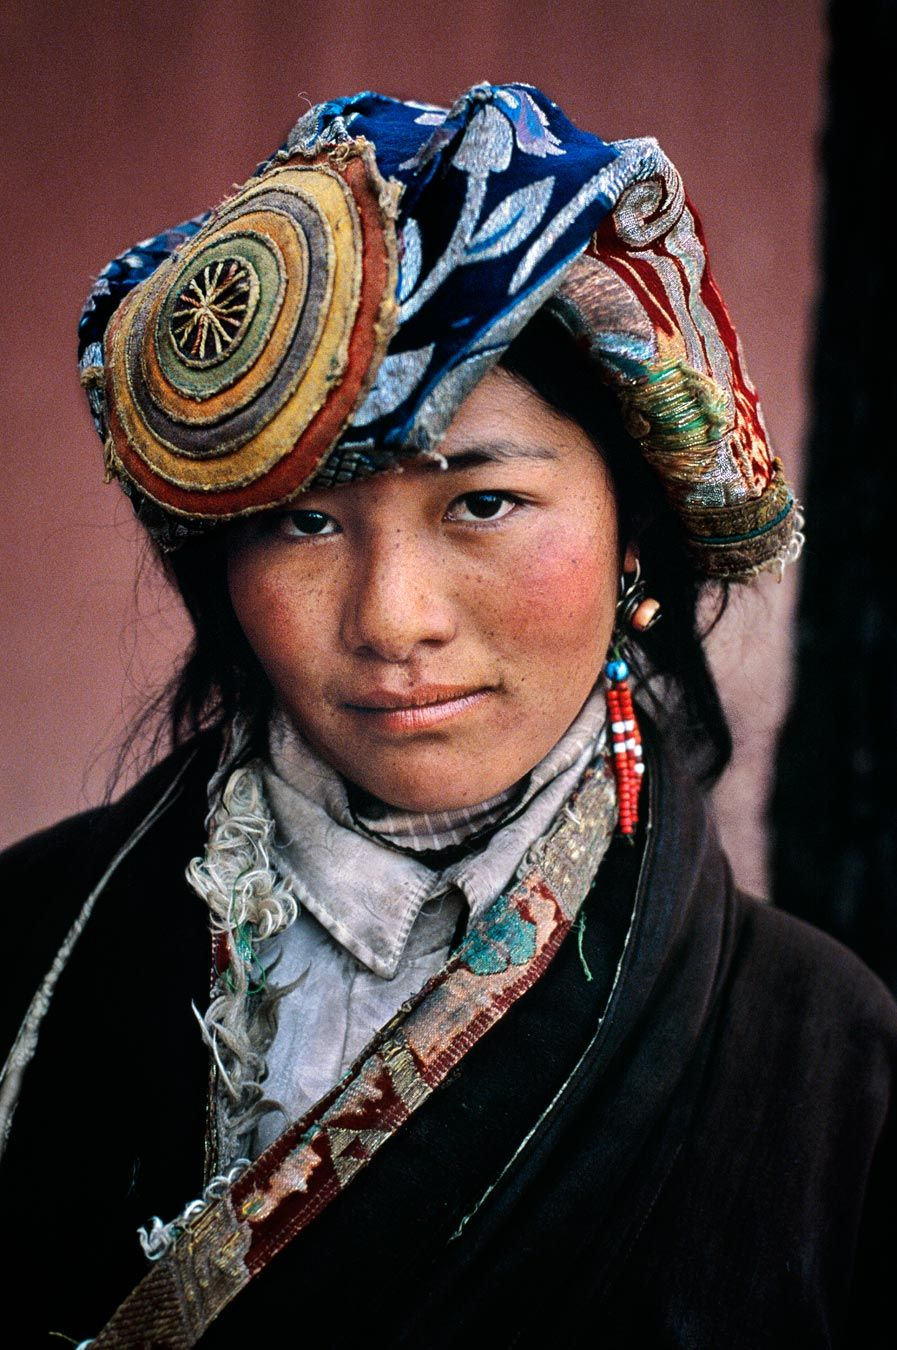 Asia | Portrait of a Tibetan woman wearing a traditional headdress, Potala Palace, Lhasa, Tibet | © Steve McCurry